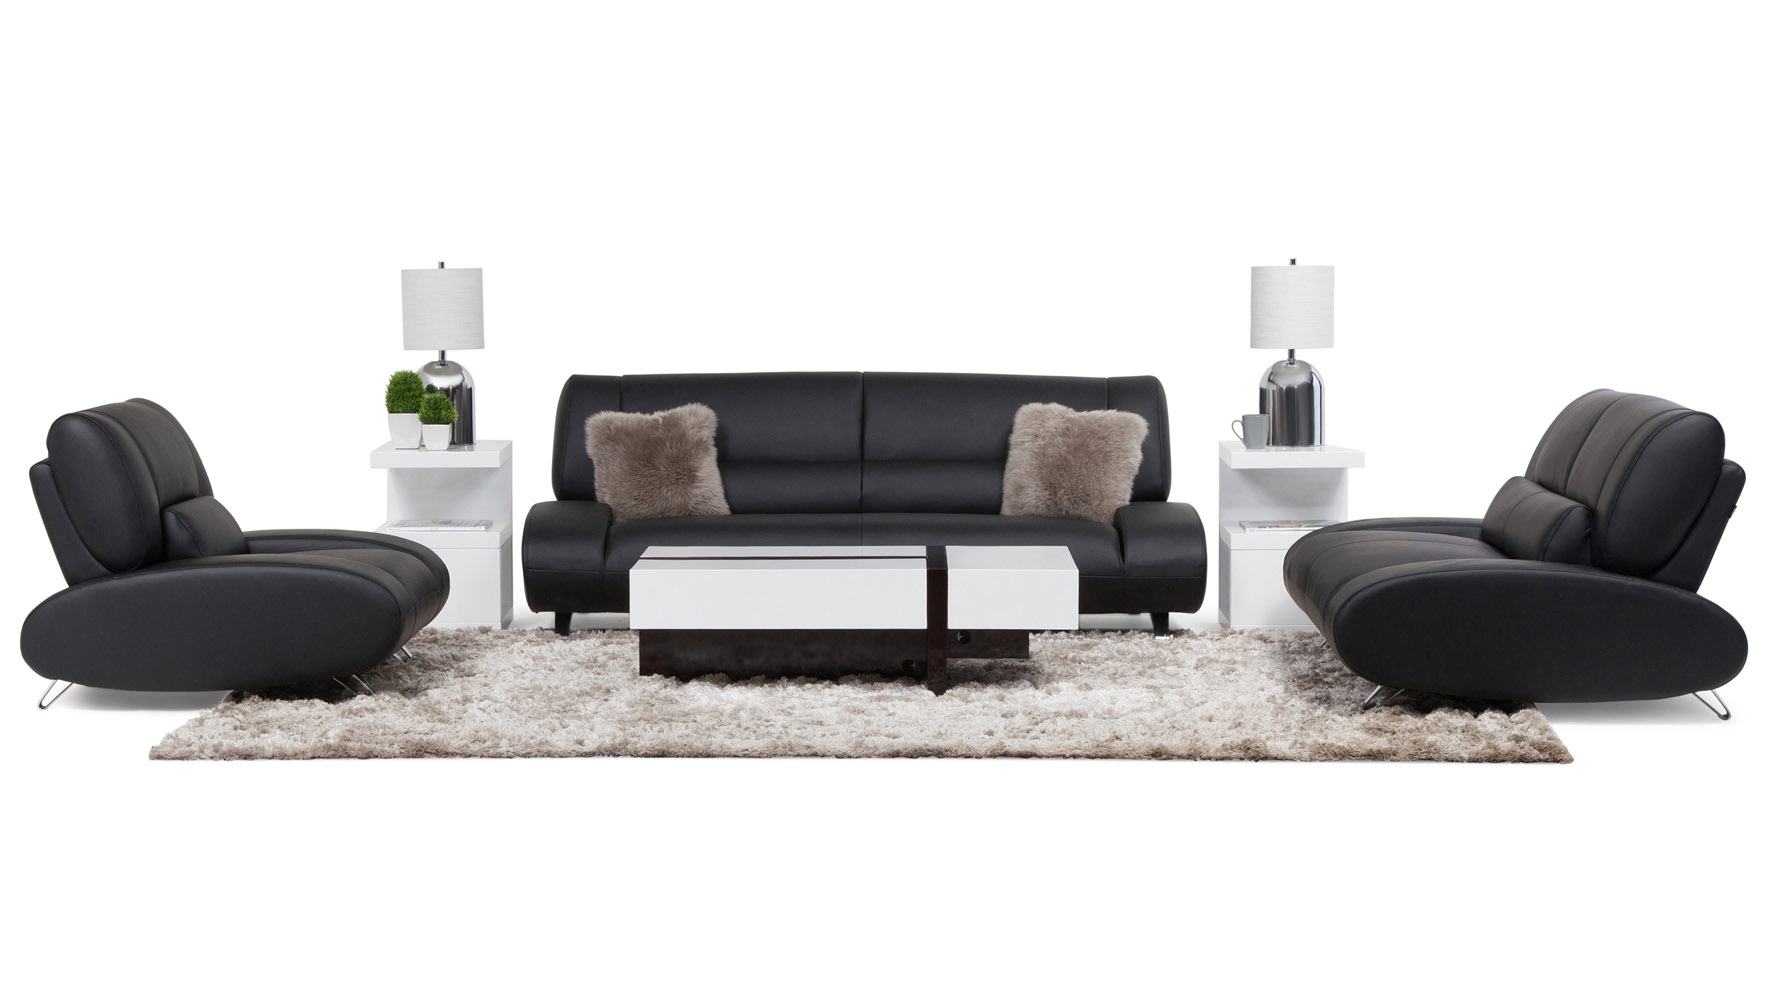 recliner sofa set 3 2 1 designs photos hot aspen group zuri furniture